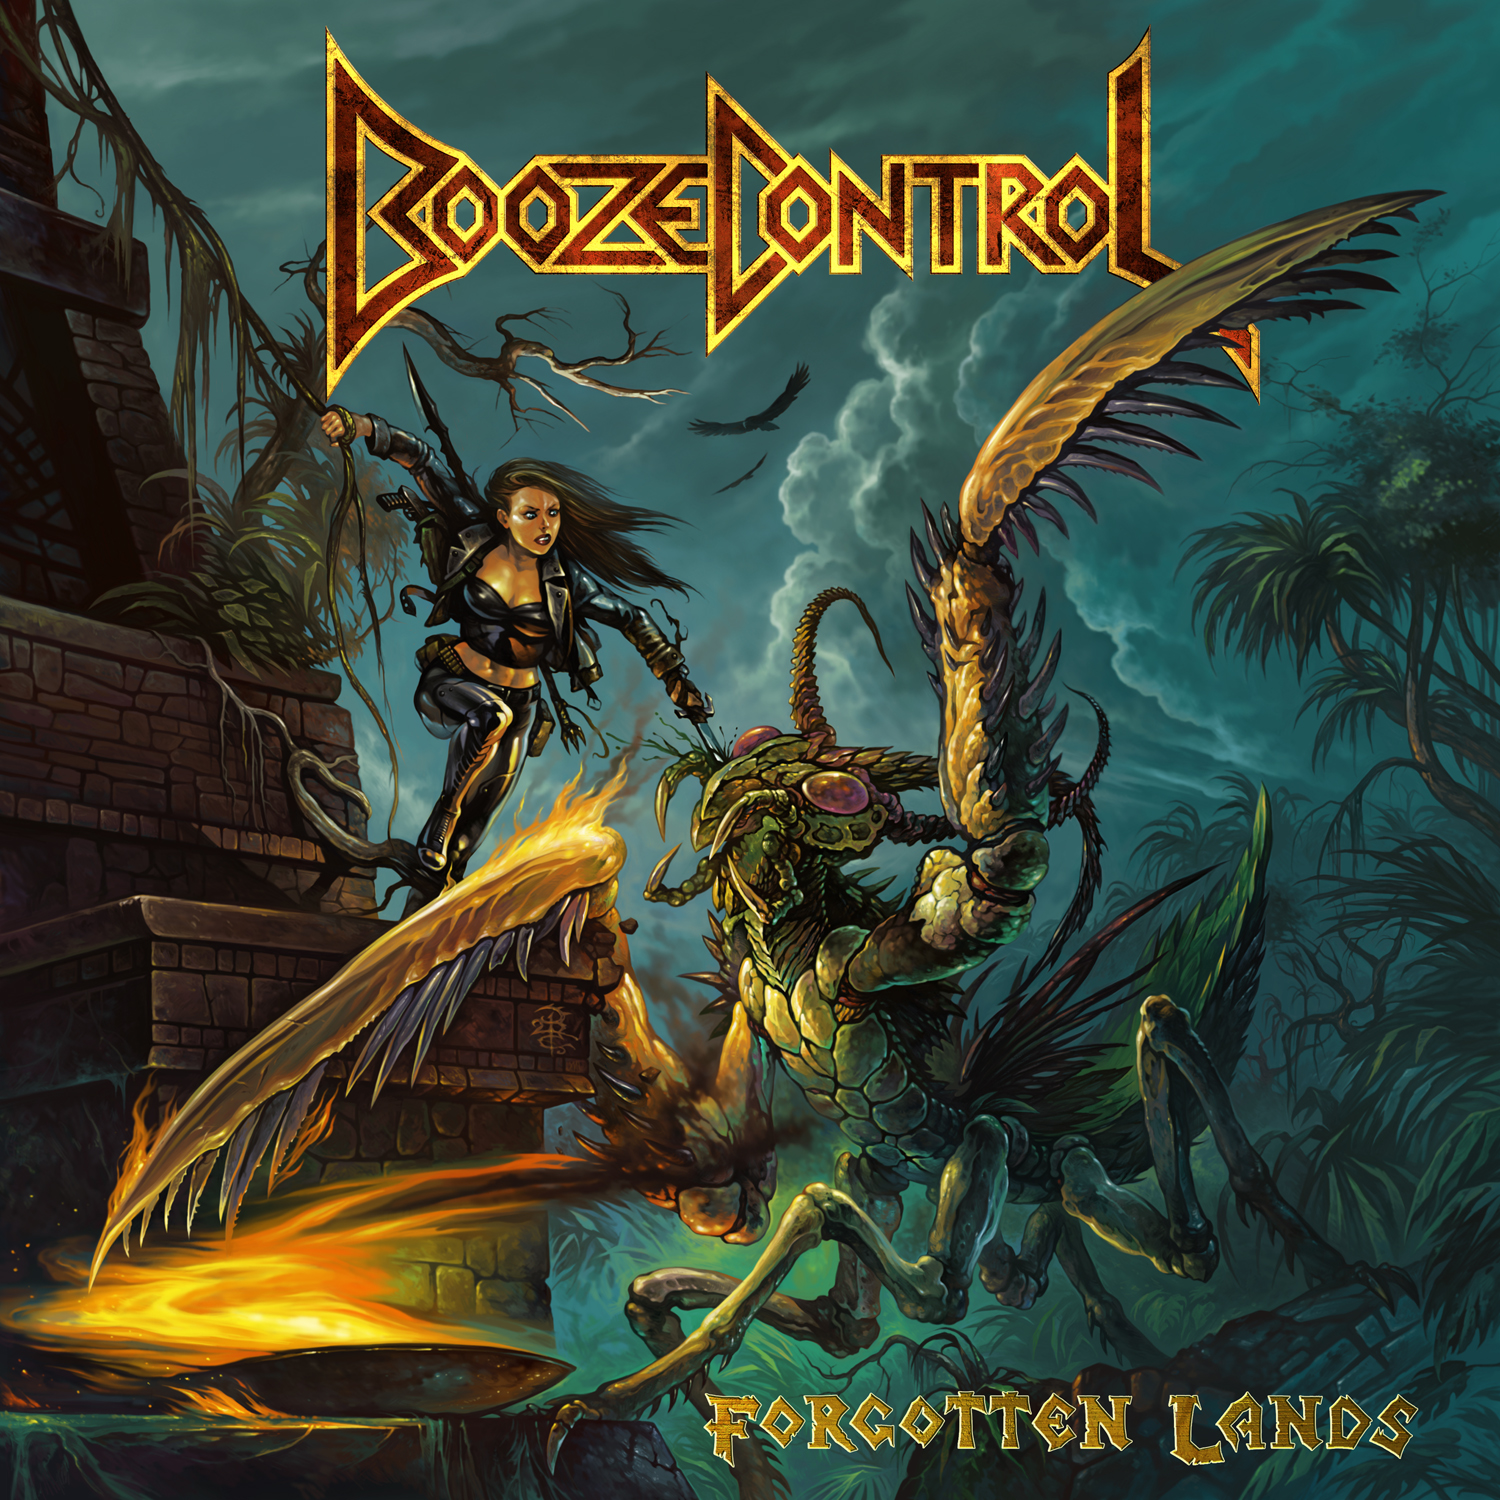 booze-control-forgotten-lands-traditionelles-gebraeu-album-review